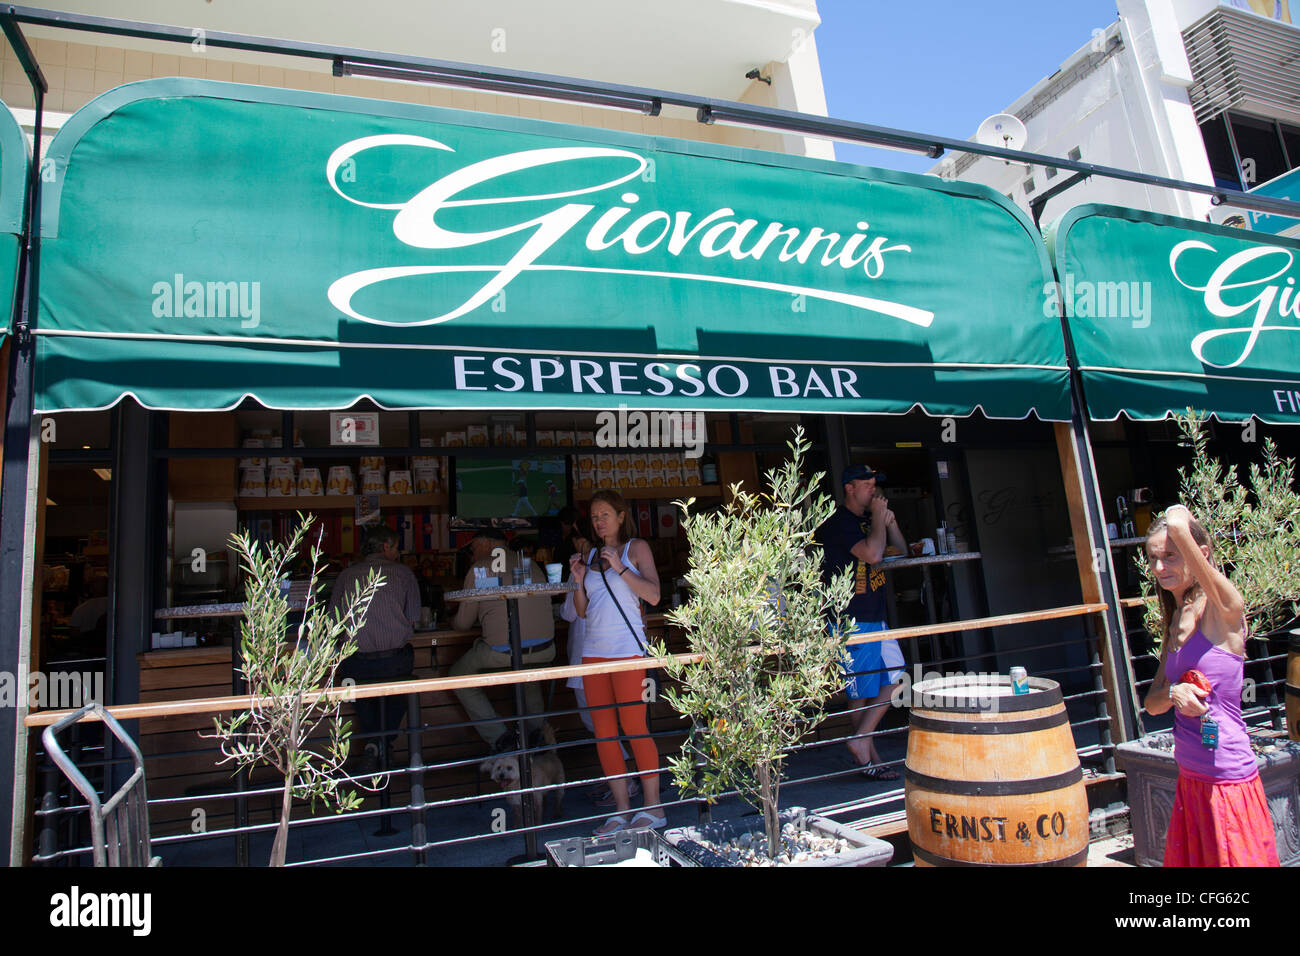 Cafe Bar Deli Stock Photos & Cafe Bar Deli Stock Images - Alamy